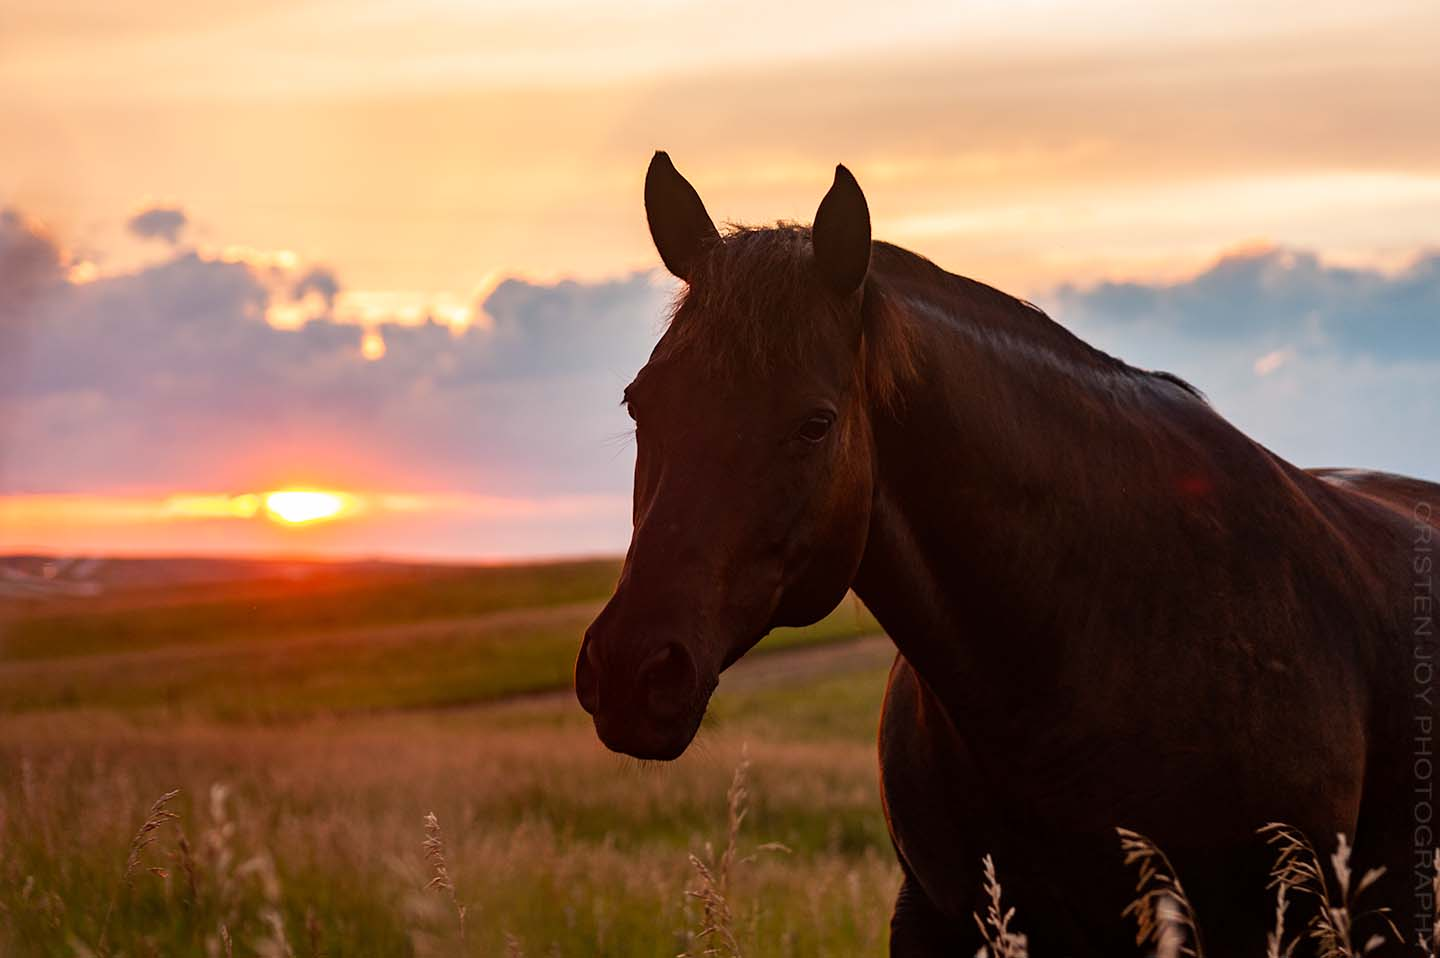 Sunset on the Prairie {Sky & Horses}